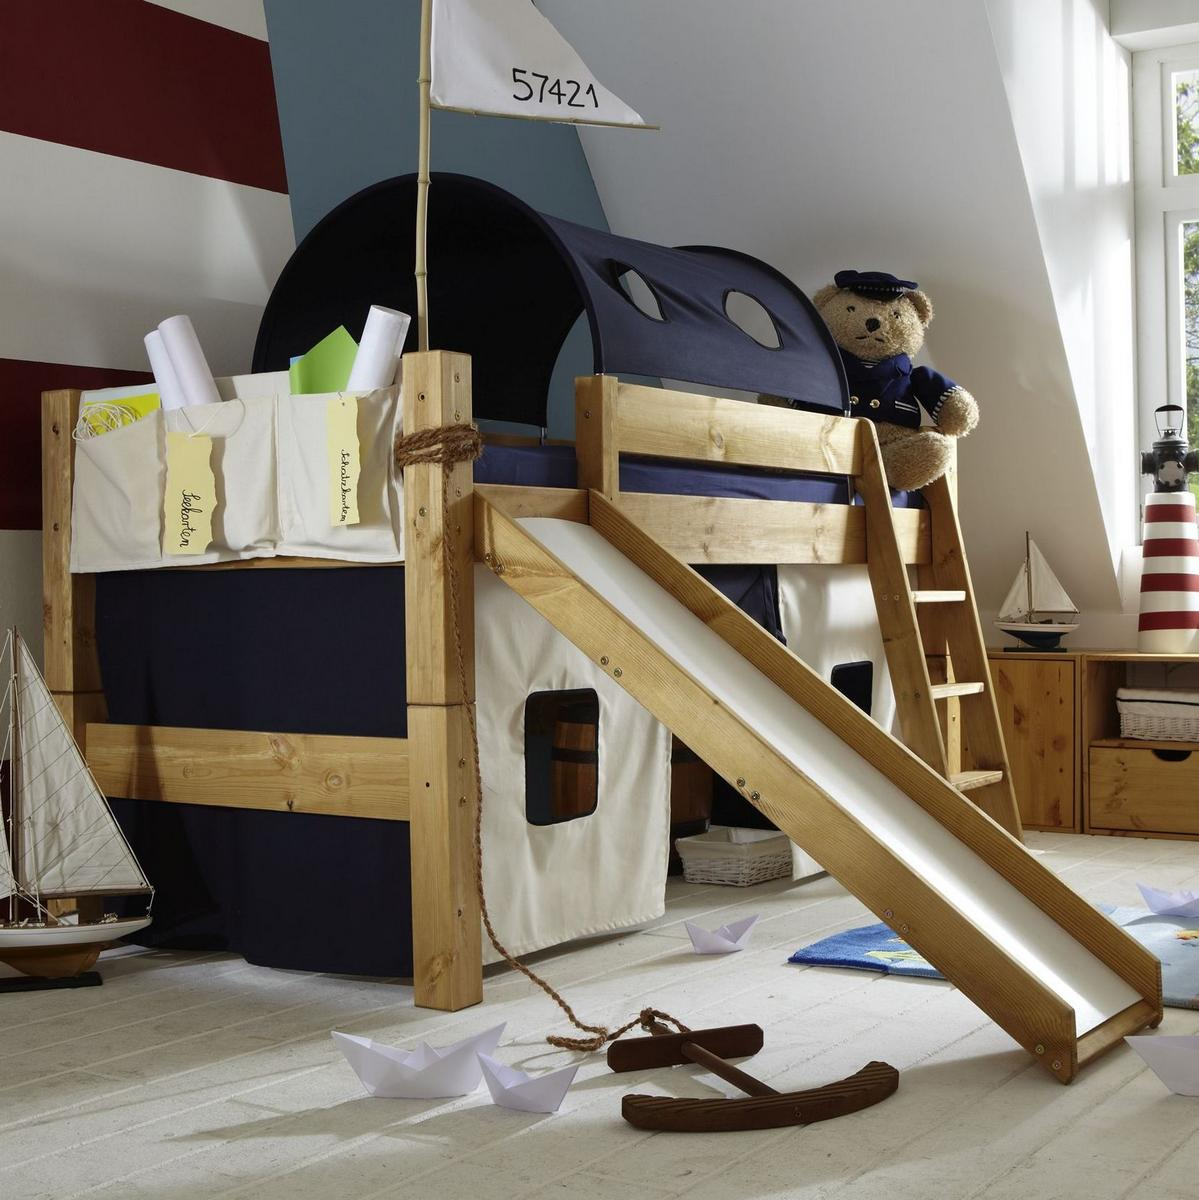 hochbett spielbett mit rutsche tobykids kiefer massiv. Black Bedroom Furniture Sets. Home Design Ideas